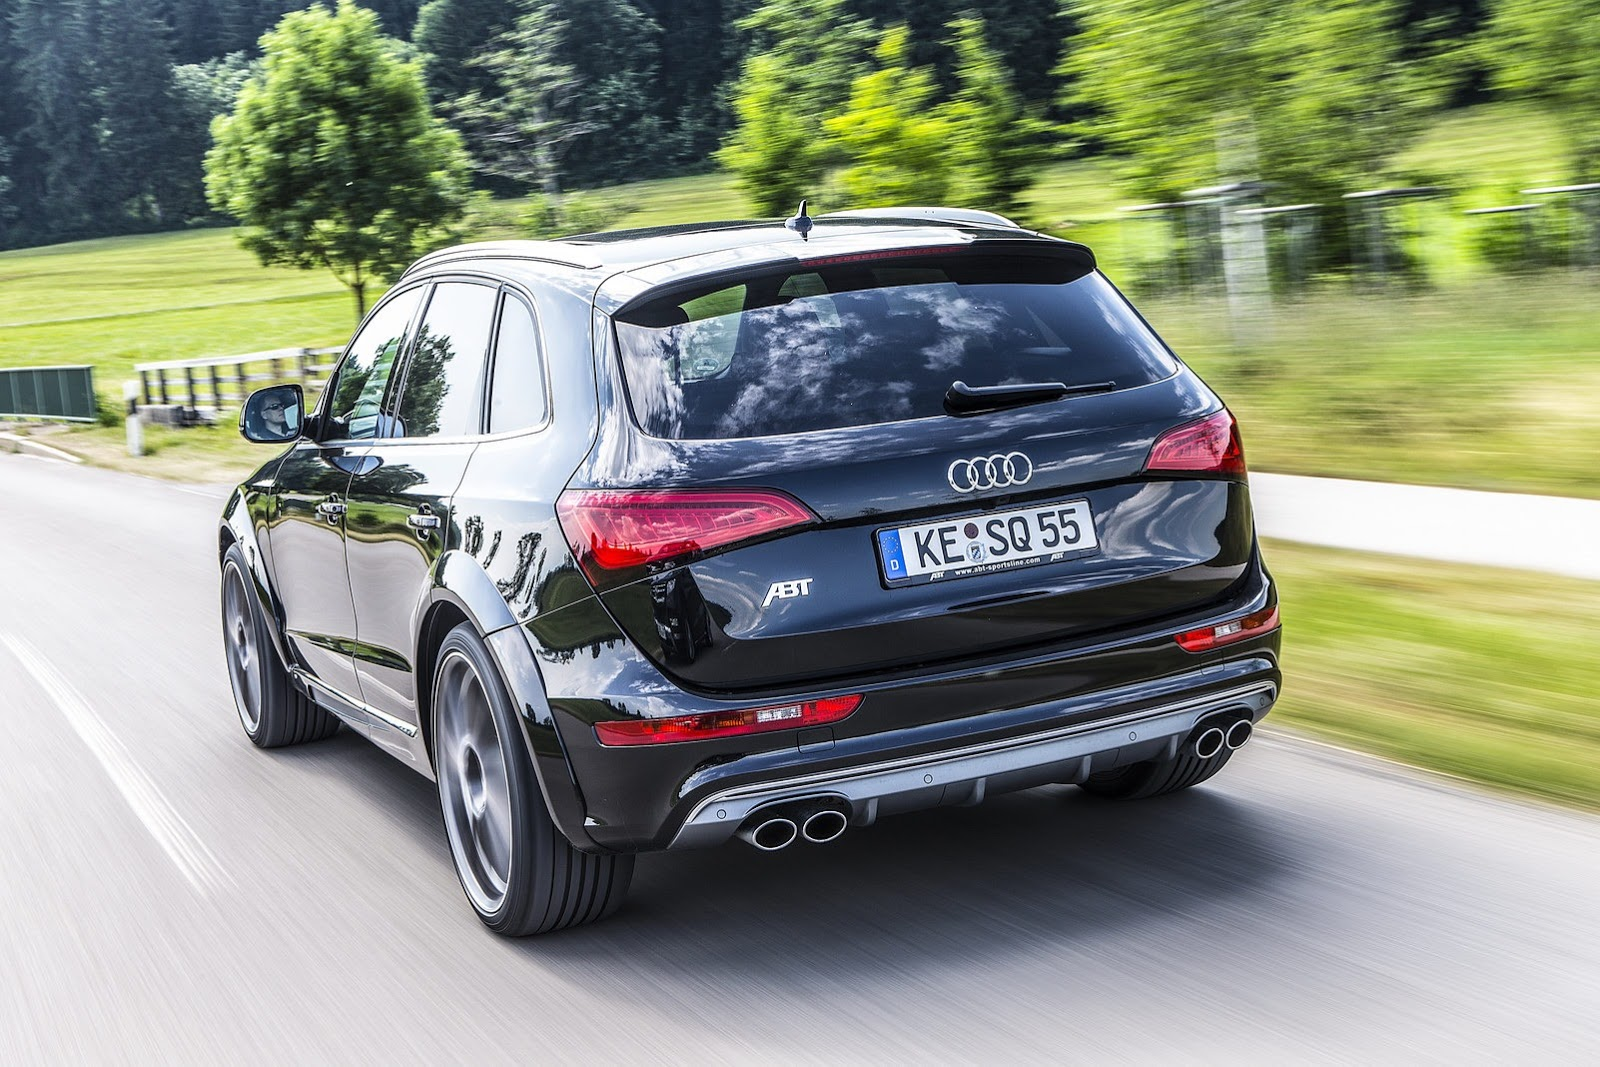 Audi SQ5 TDI Proves Faster than Macan S Diesel in Drag ...